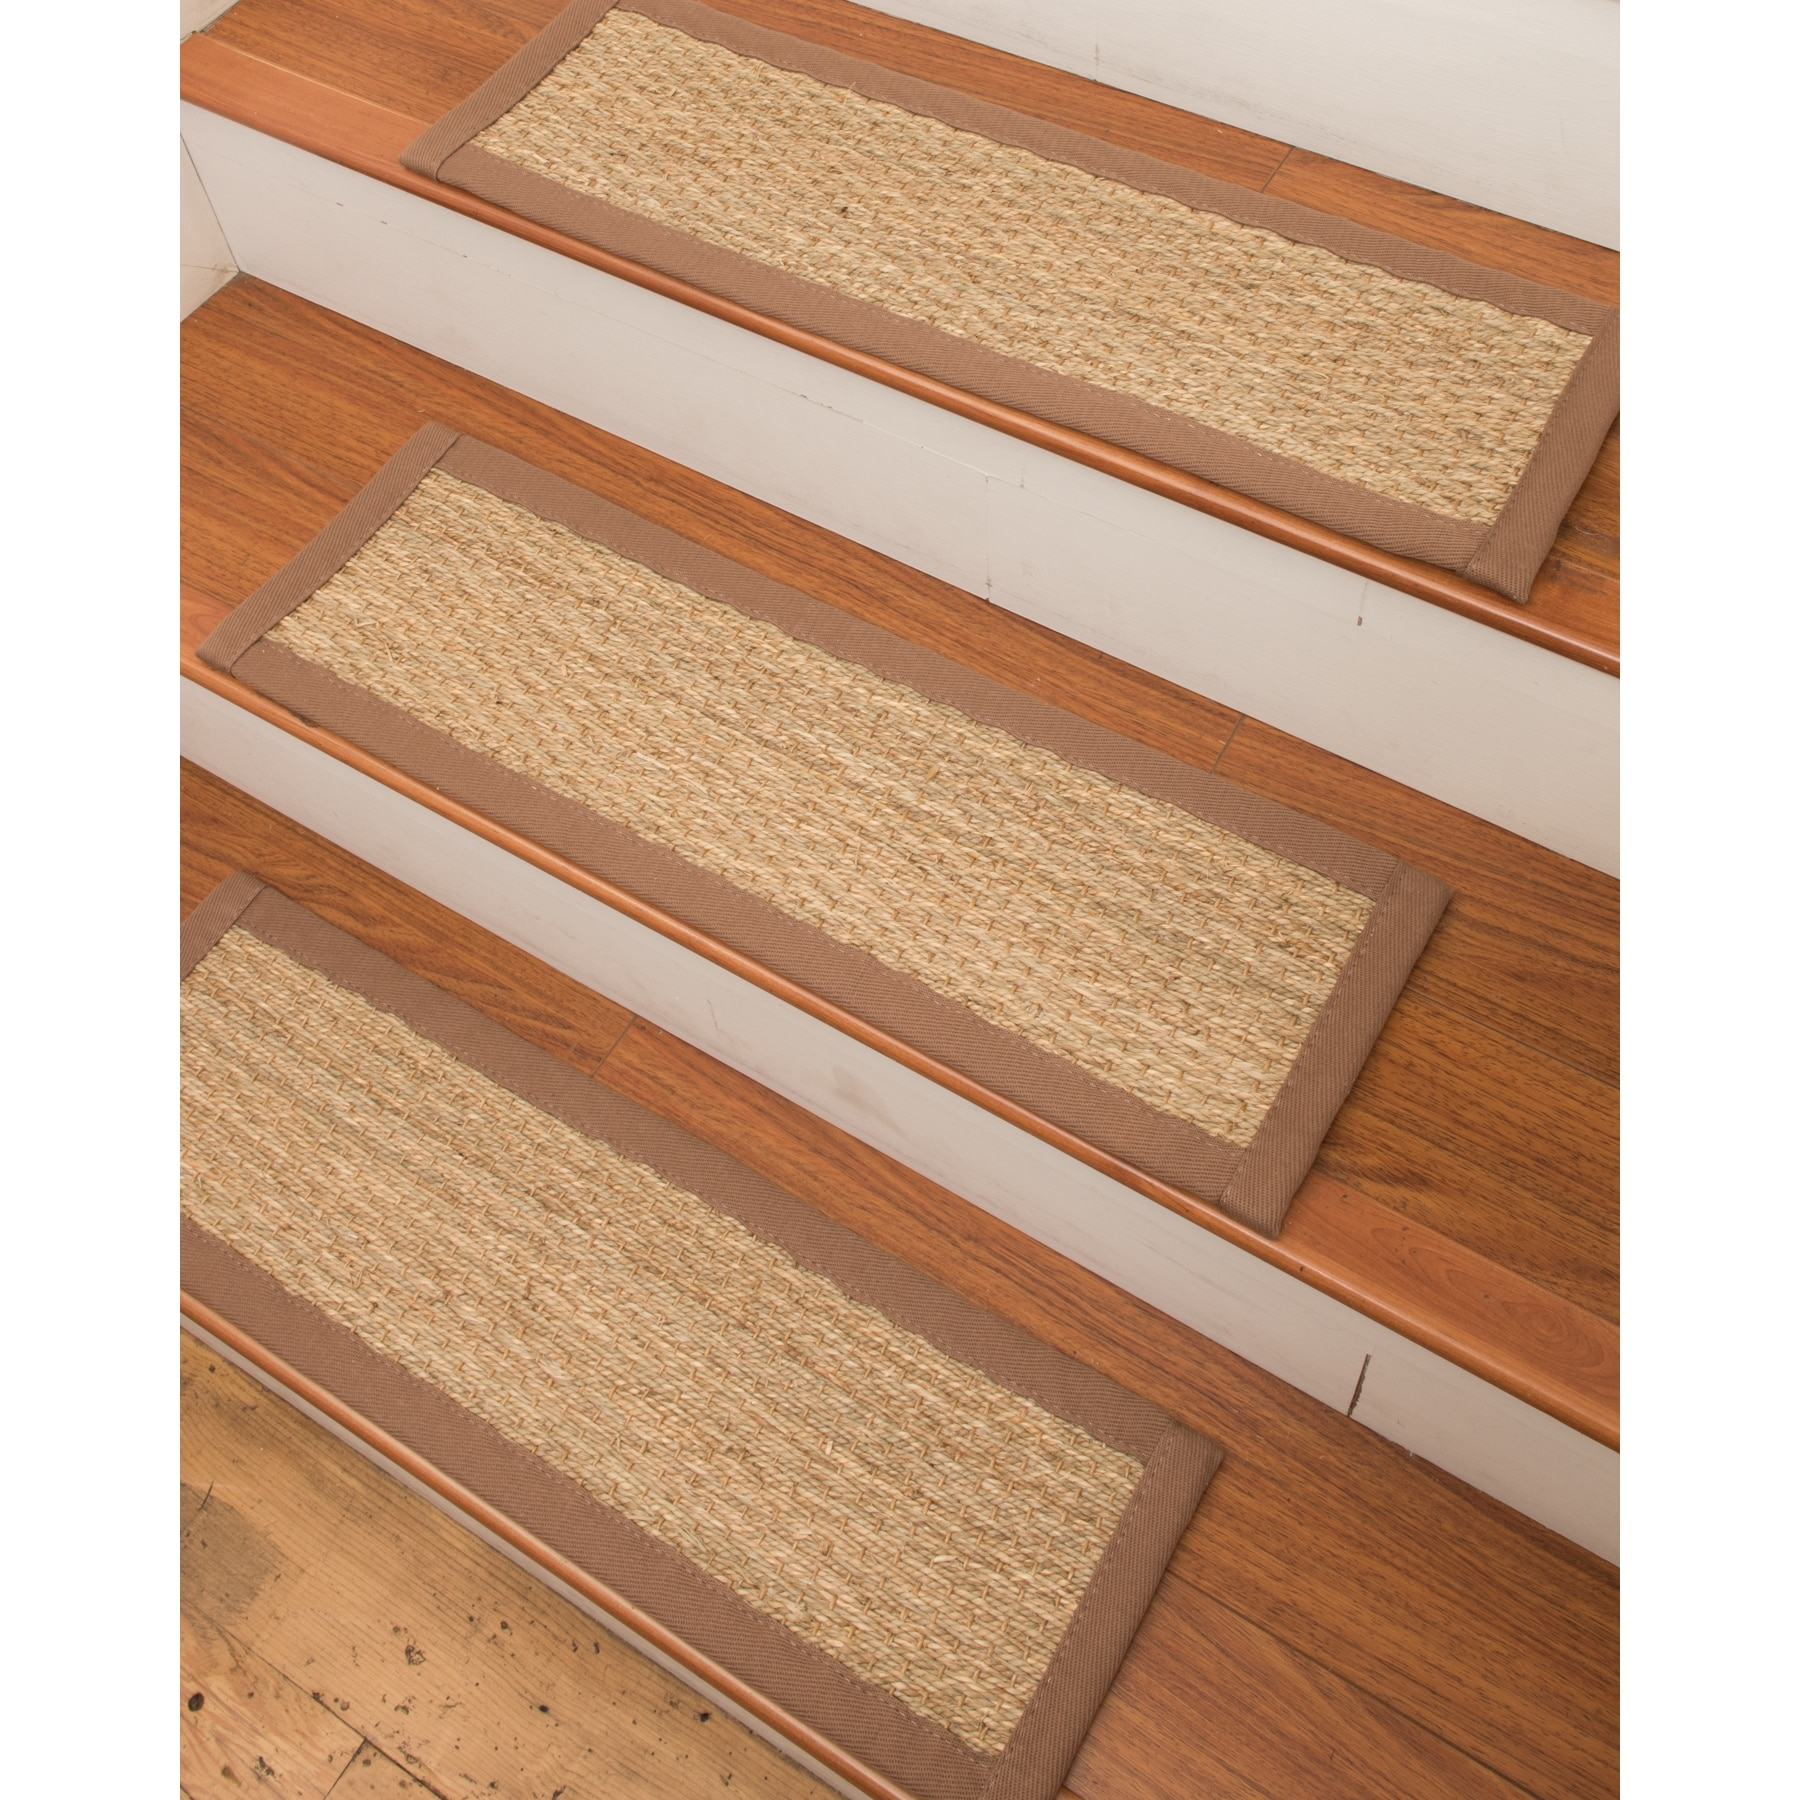 Handcrafted Half Panama Carpet Stair Treads Malt 9 X 29 In Carpet Stair Treads And Rugs 9× (View 3 of 15)